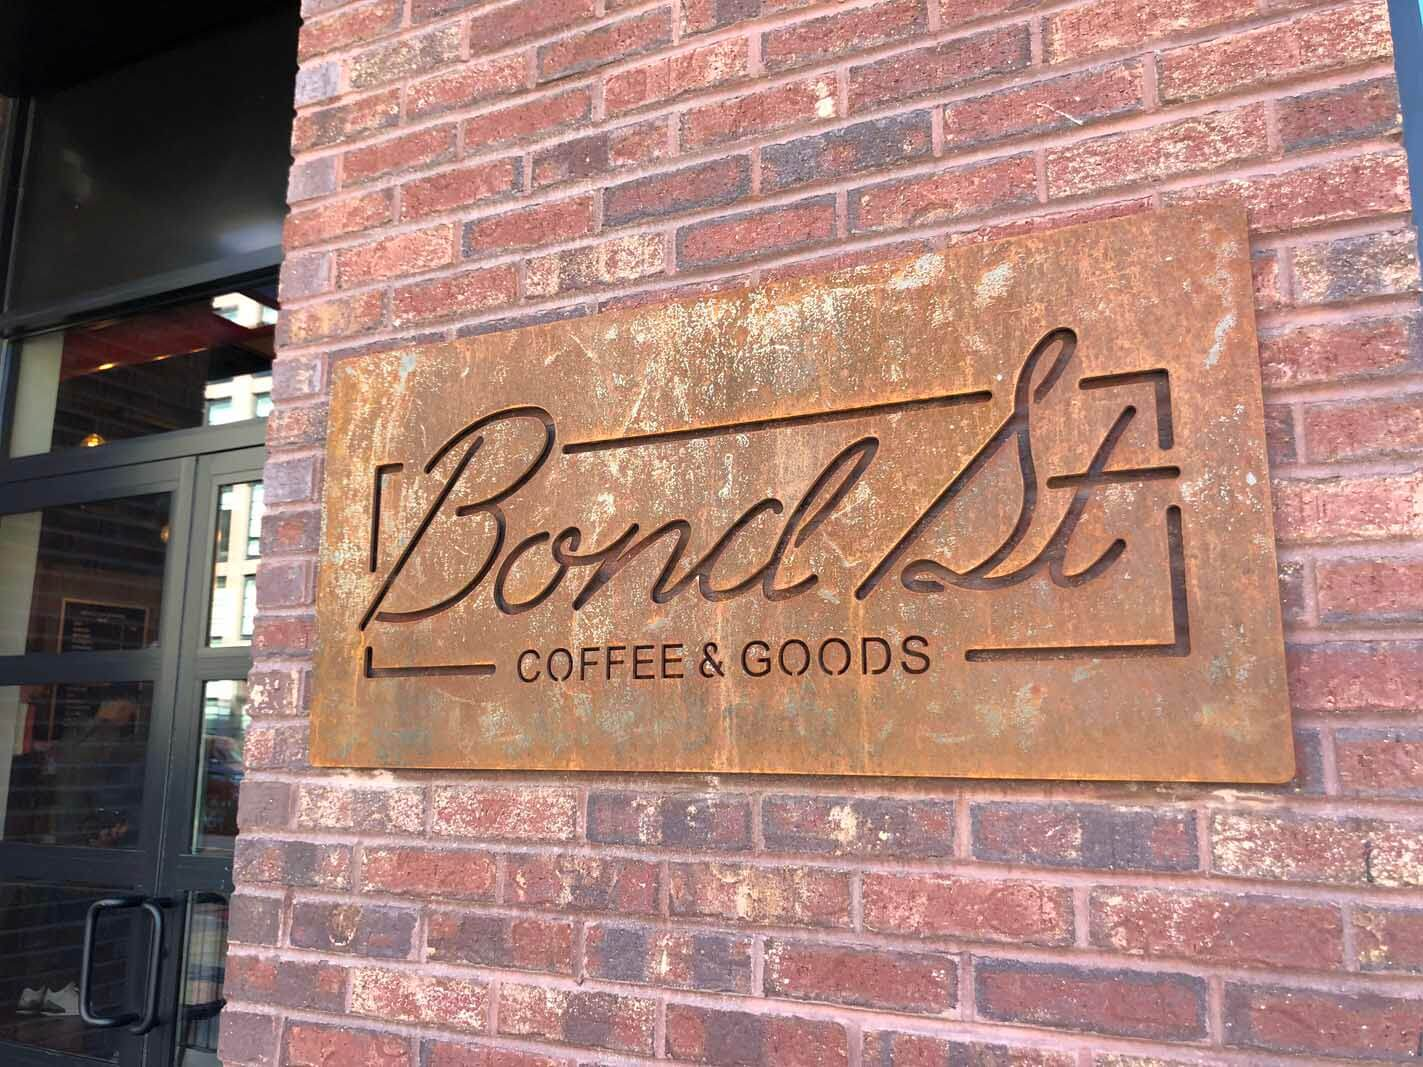 Bond Street Coffee and Goods in Gowanus